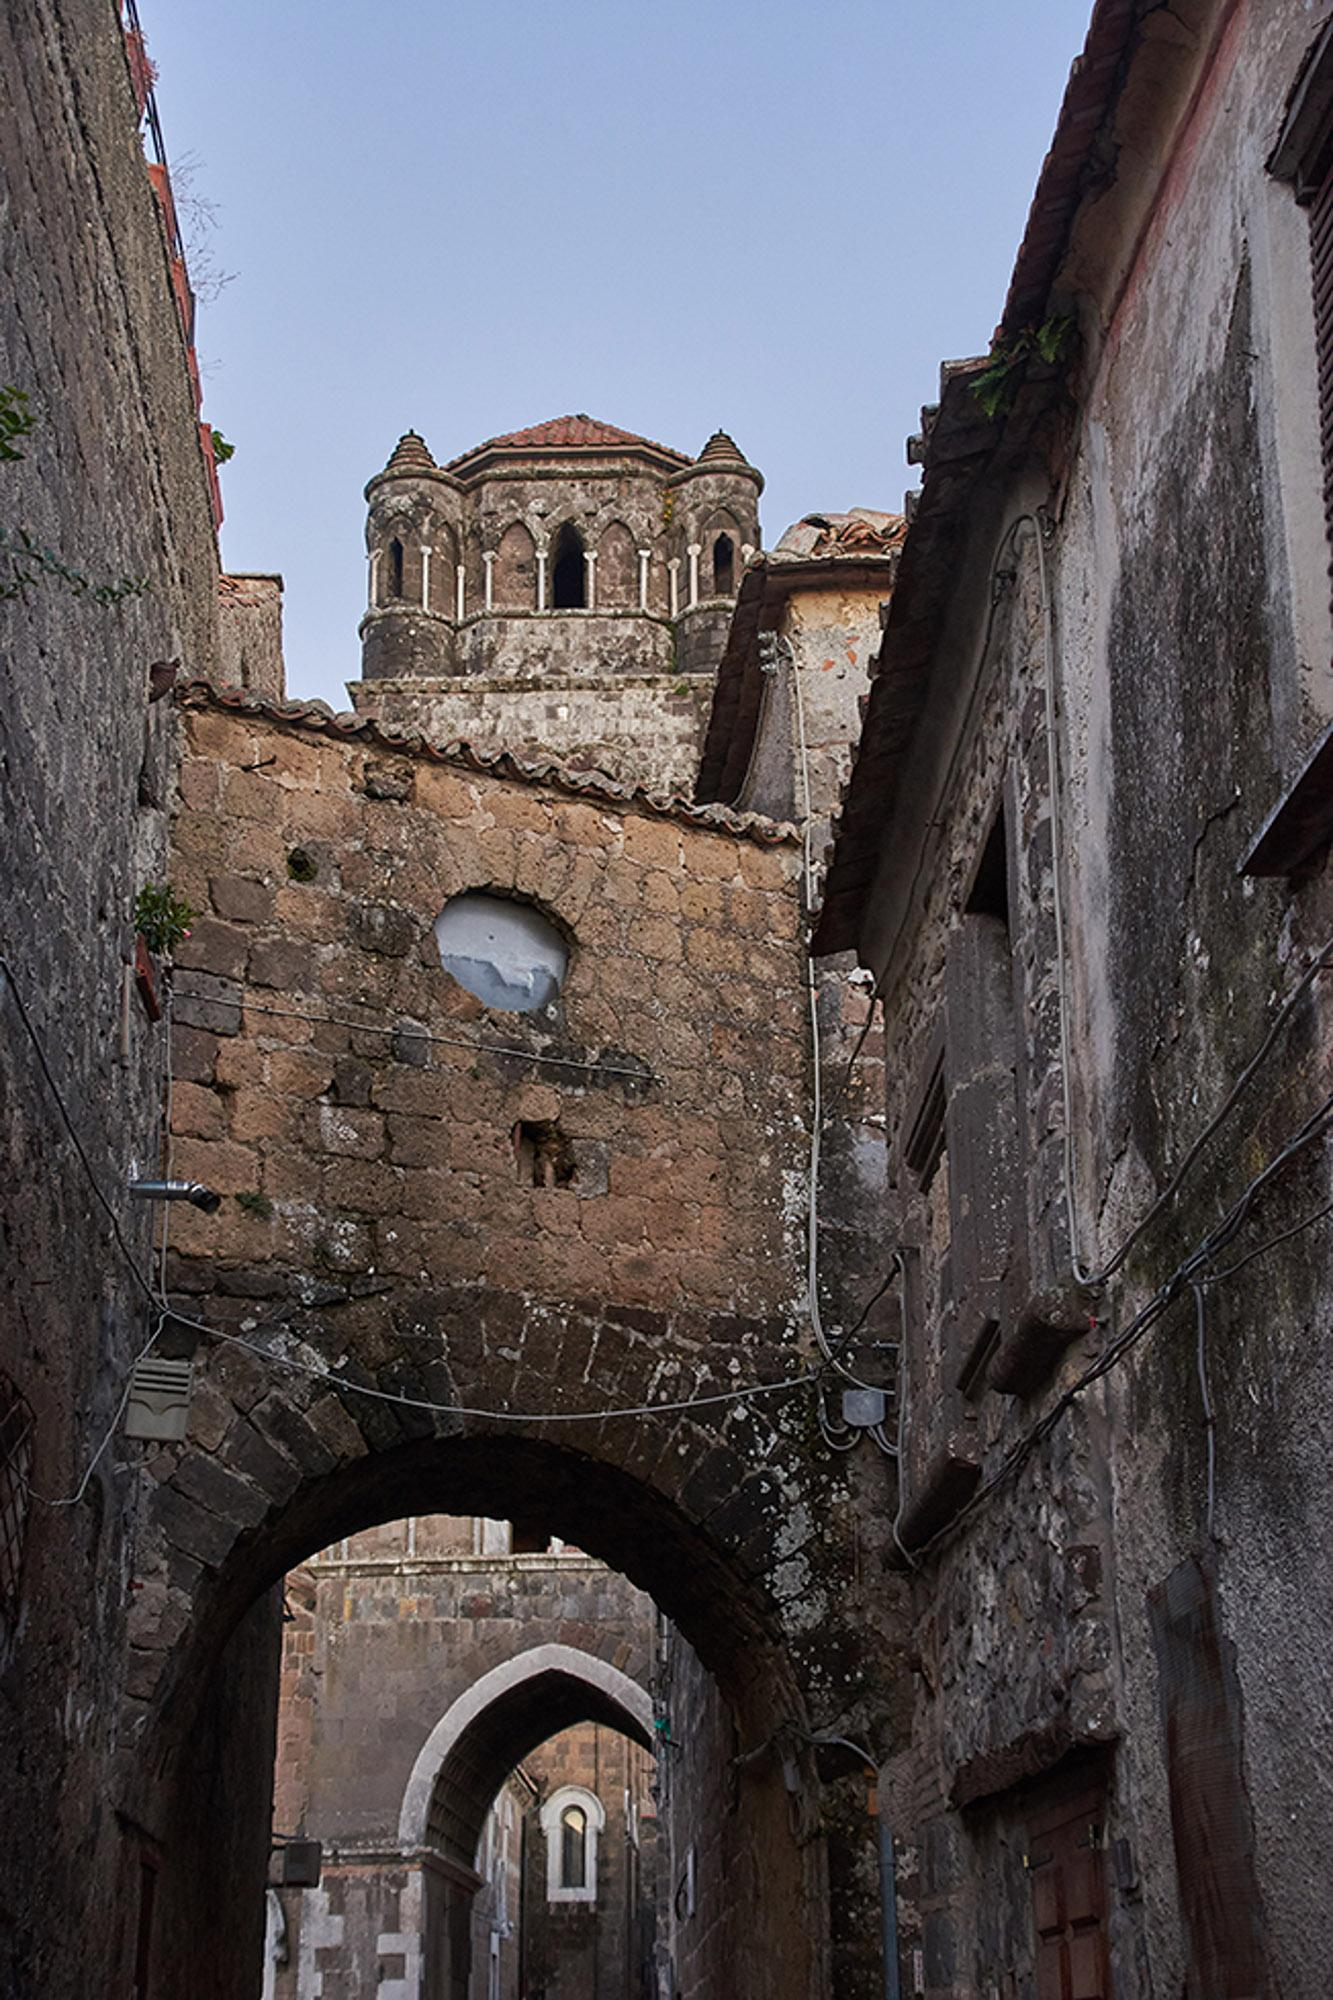 Characteristic narrow street of the ancient village of Casertavecchia, with the profile of the bell tower. – © Emma Taricco